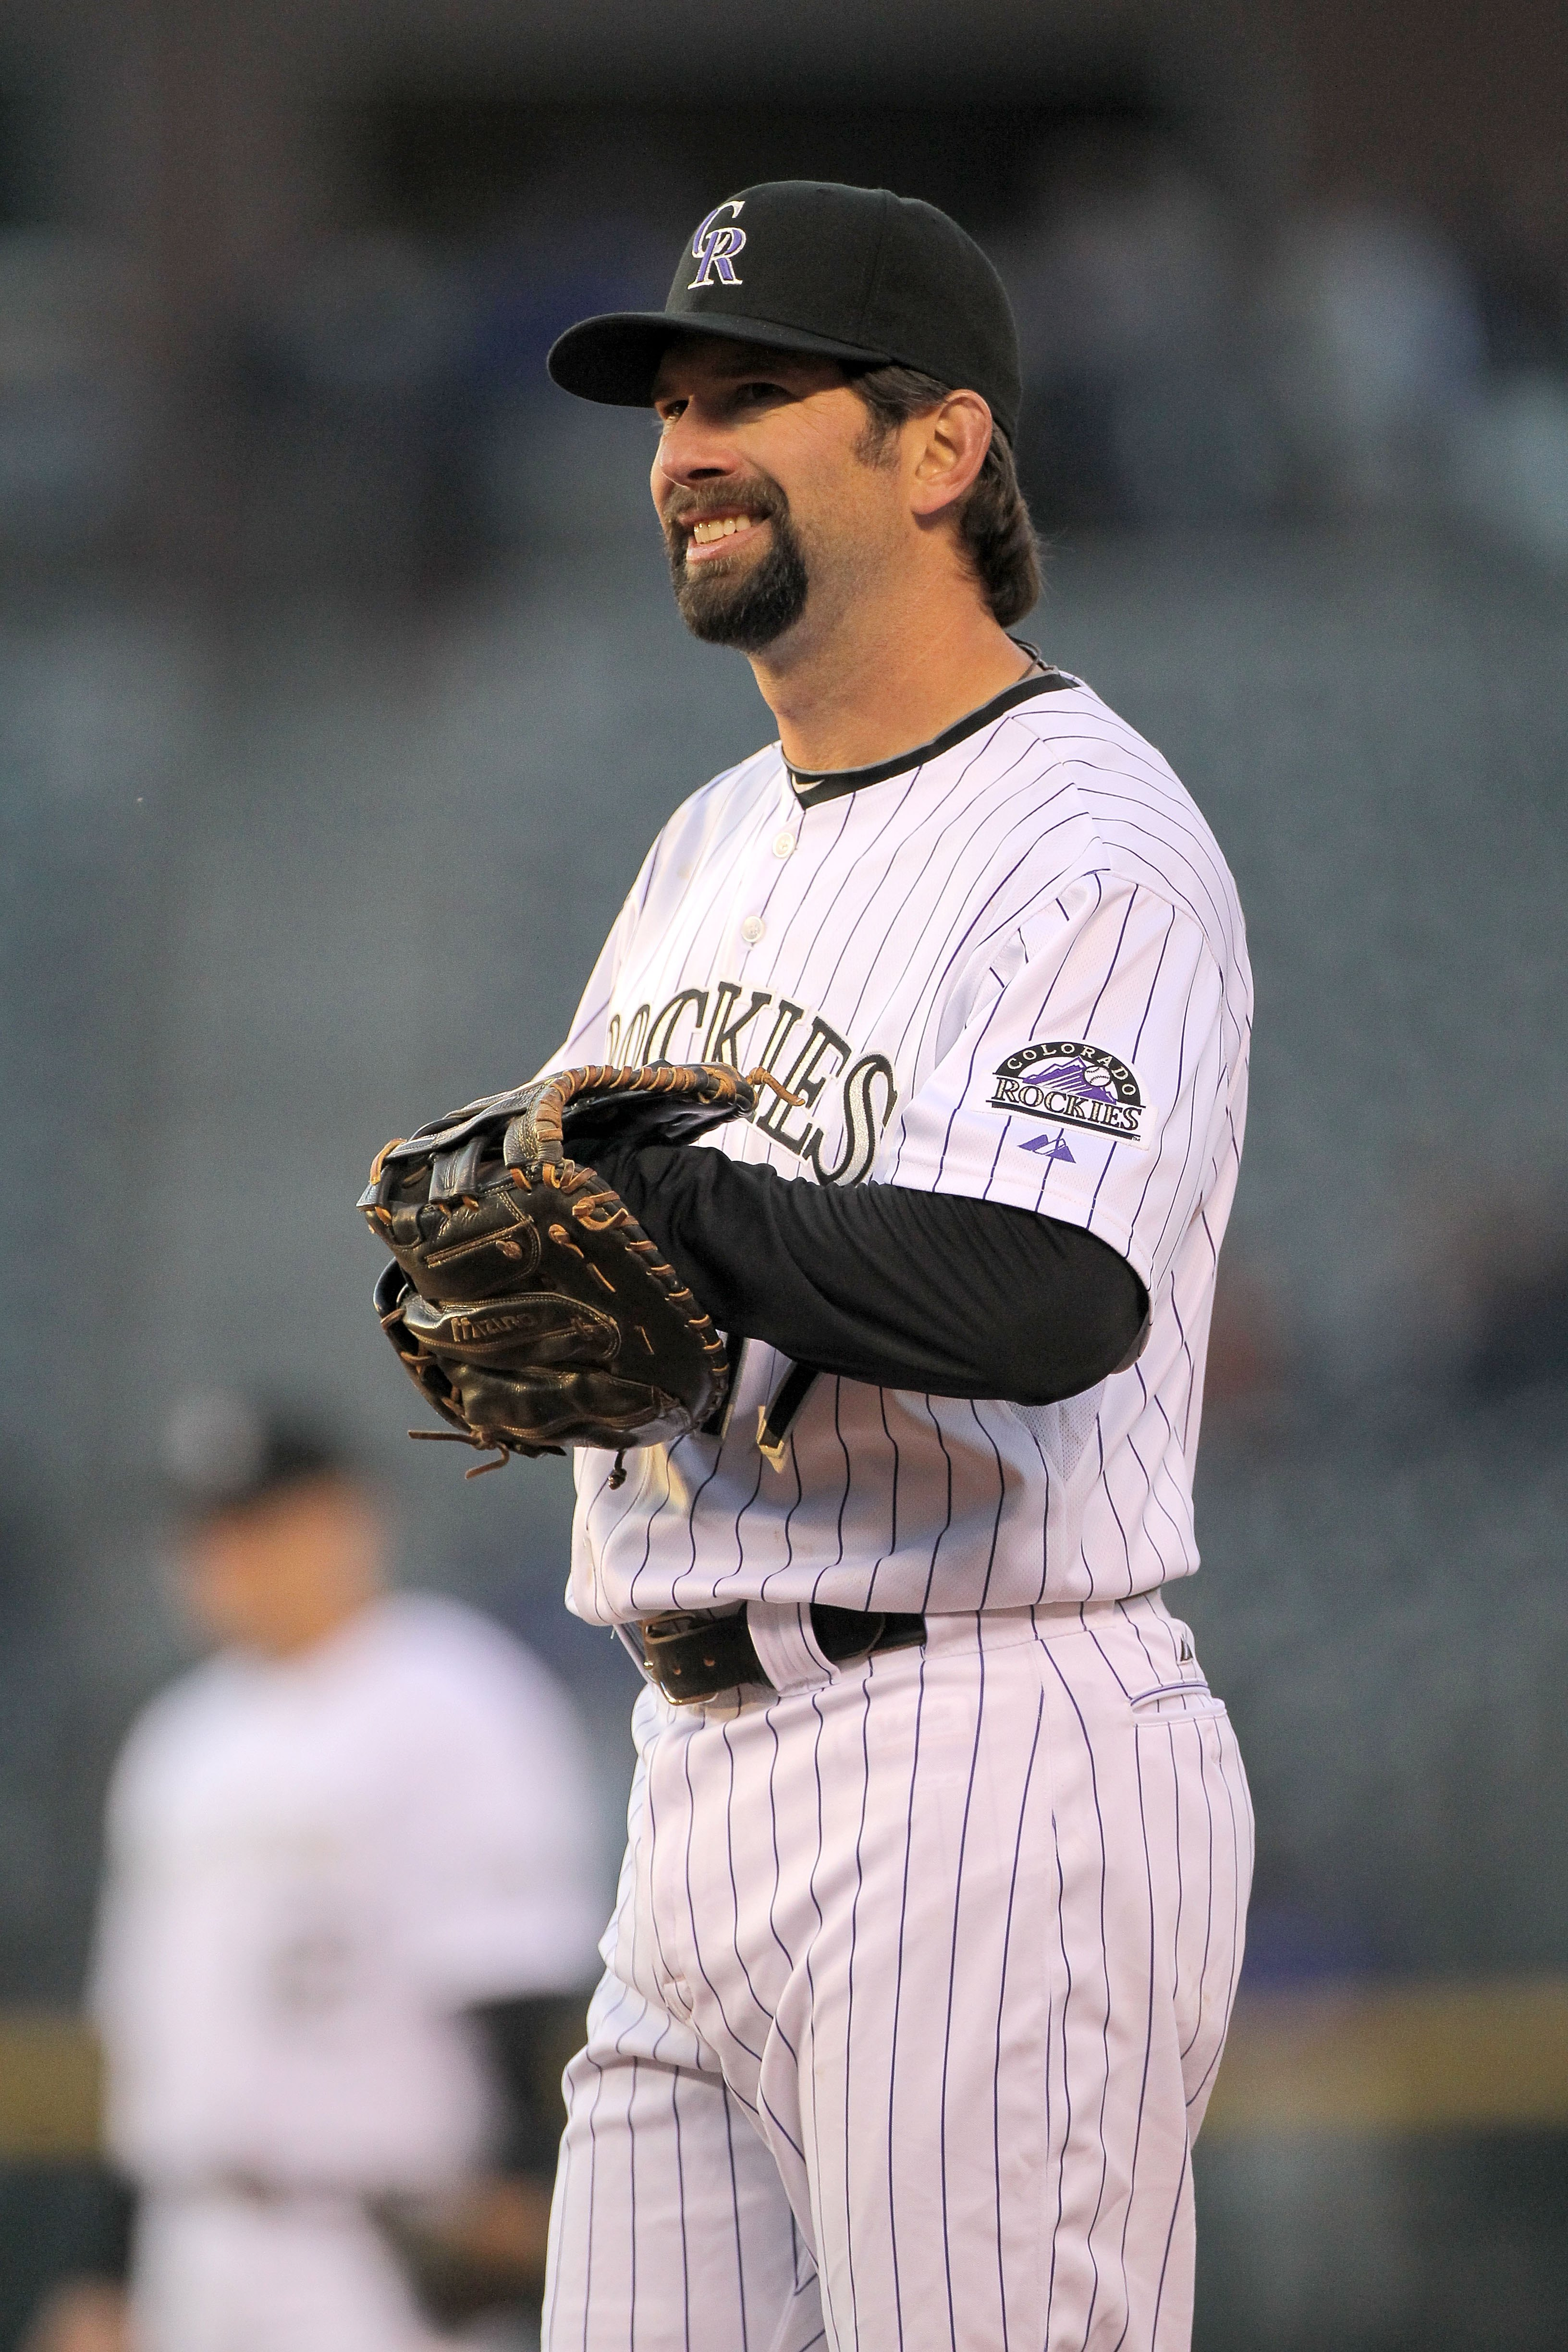 DENVER - APRIL 13:  Todd Helton #17 of the Colorado Rockies looks on as he defends against the New York Mets during Major League Baseball action at Coors Field on April 13, 2010 in Denver, Colorado.  (Photo by Doug Pensinger/Getty Images)